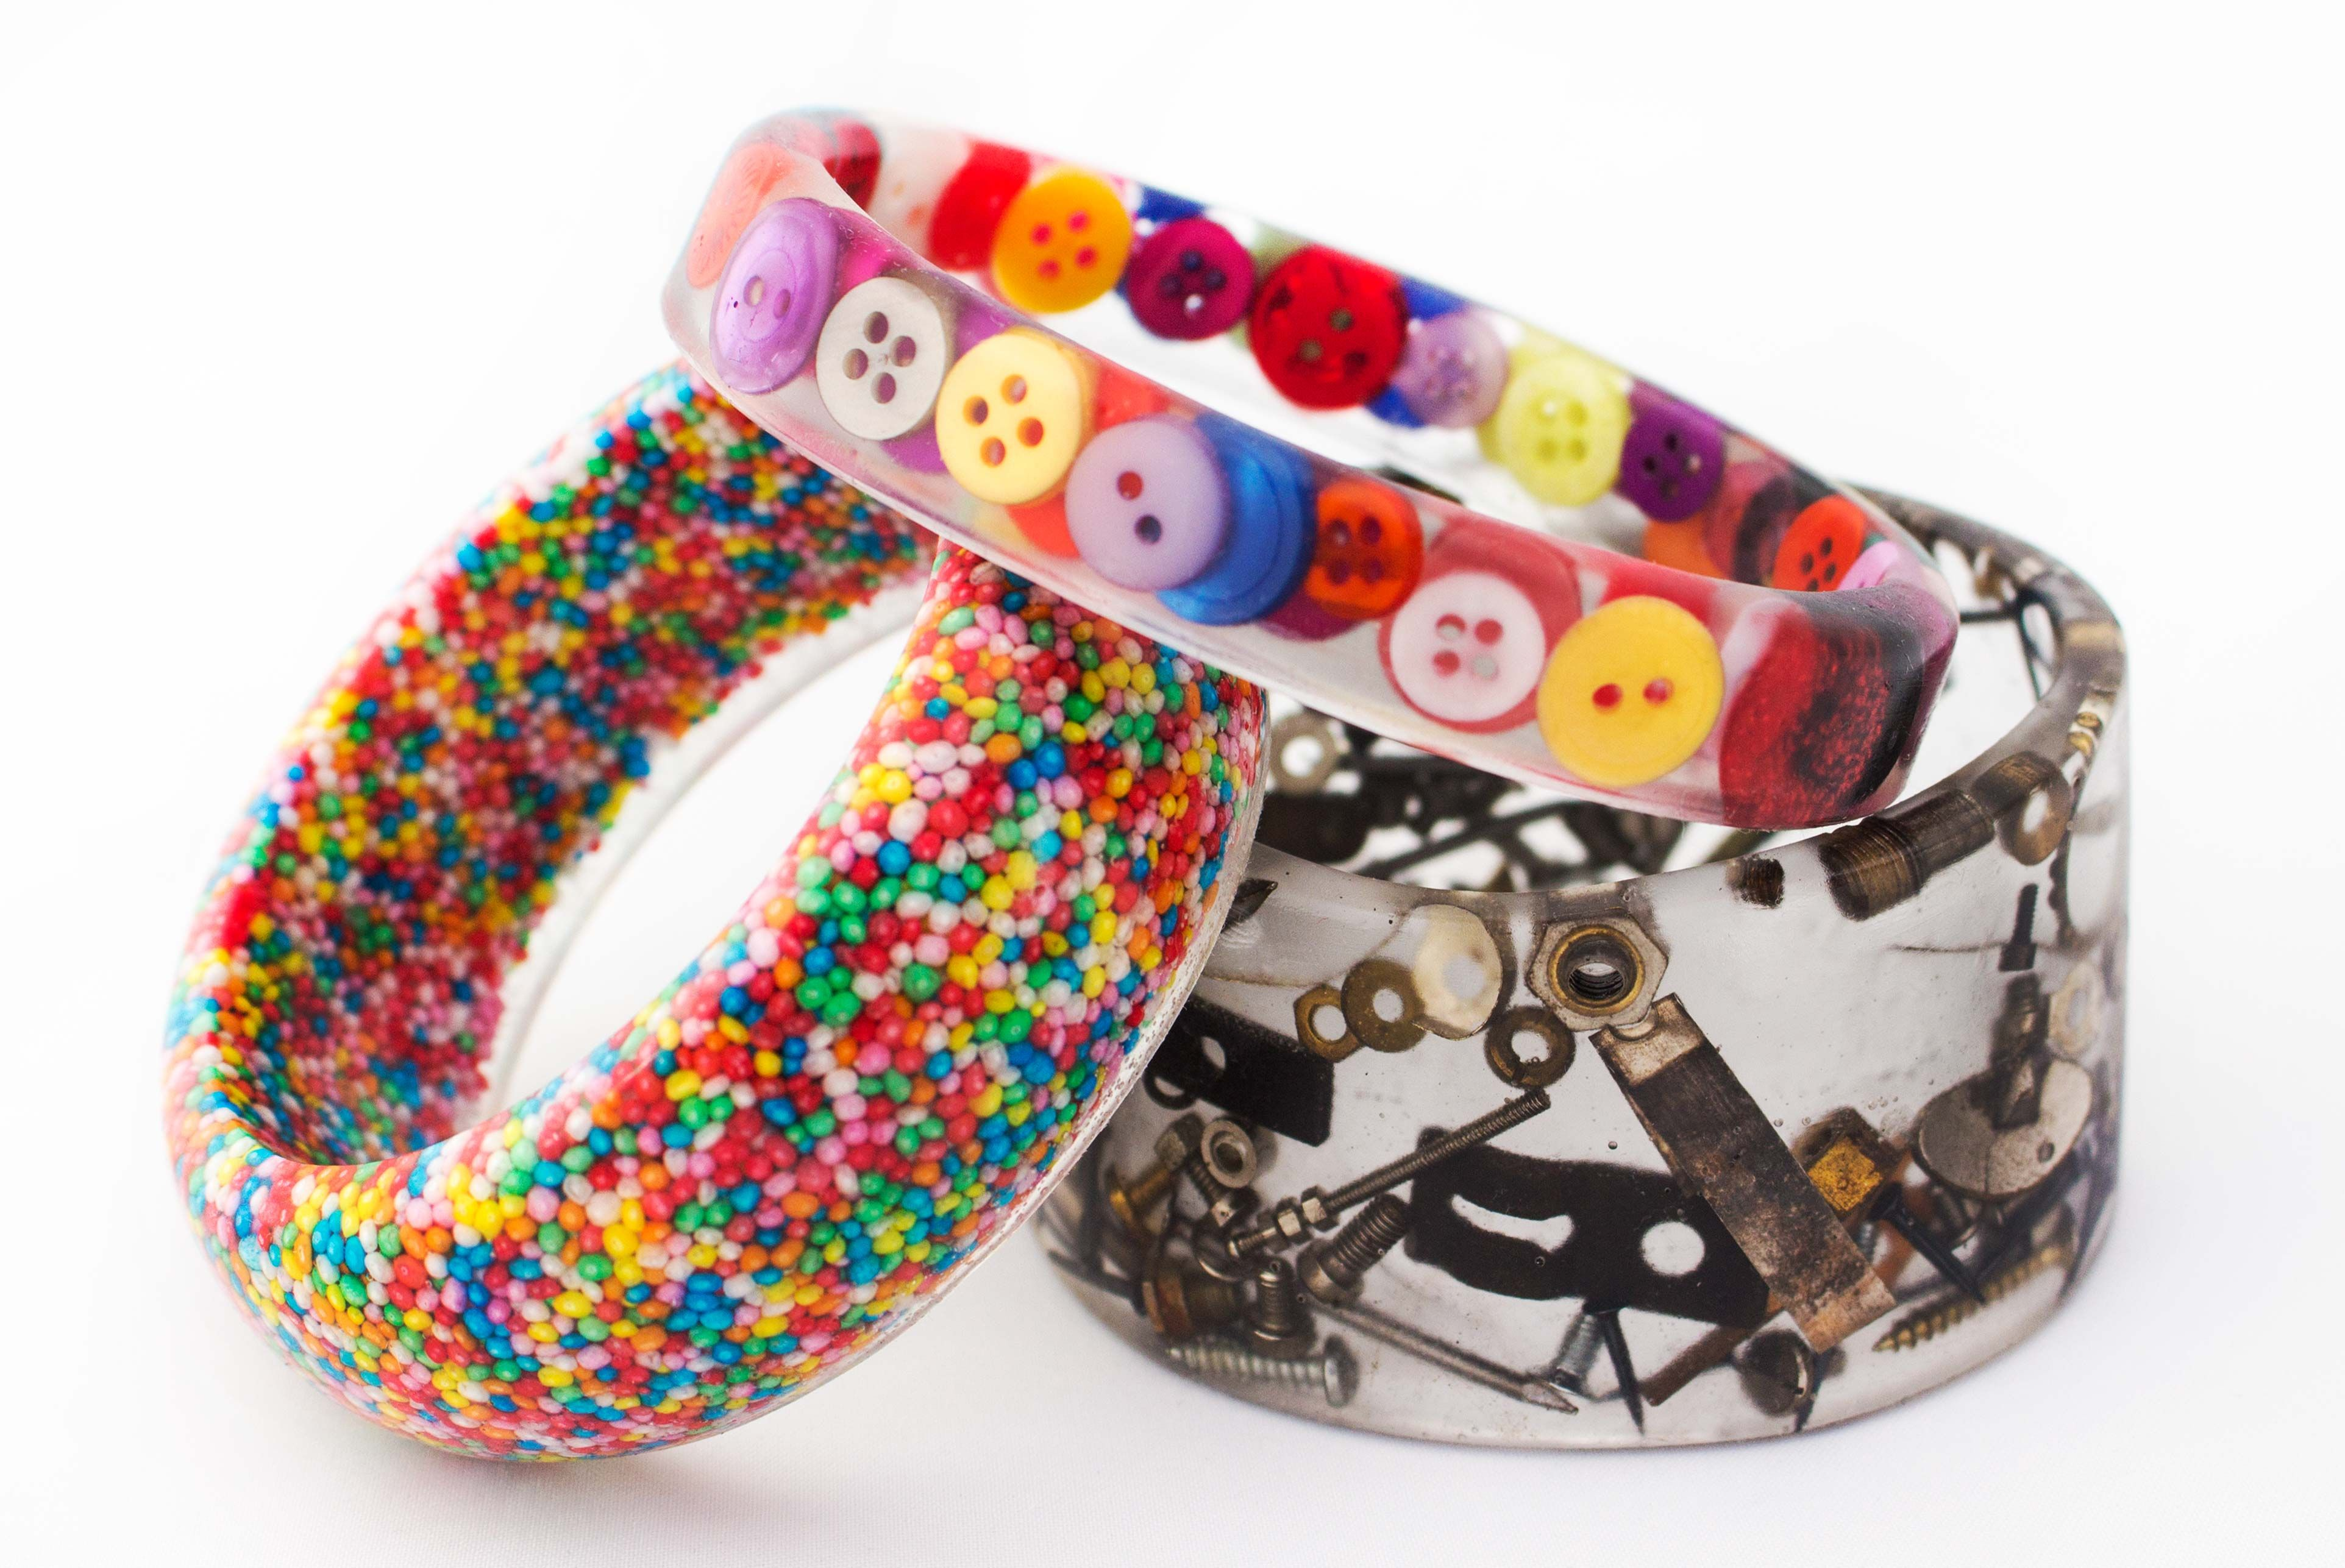 what is resin used for in jewelry making